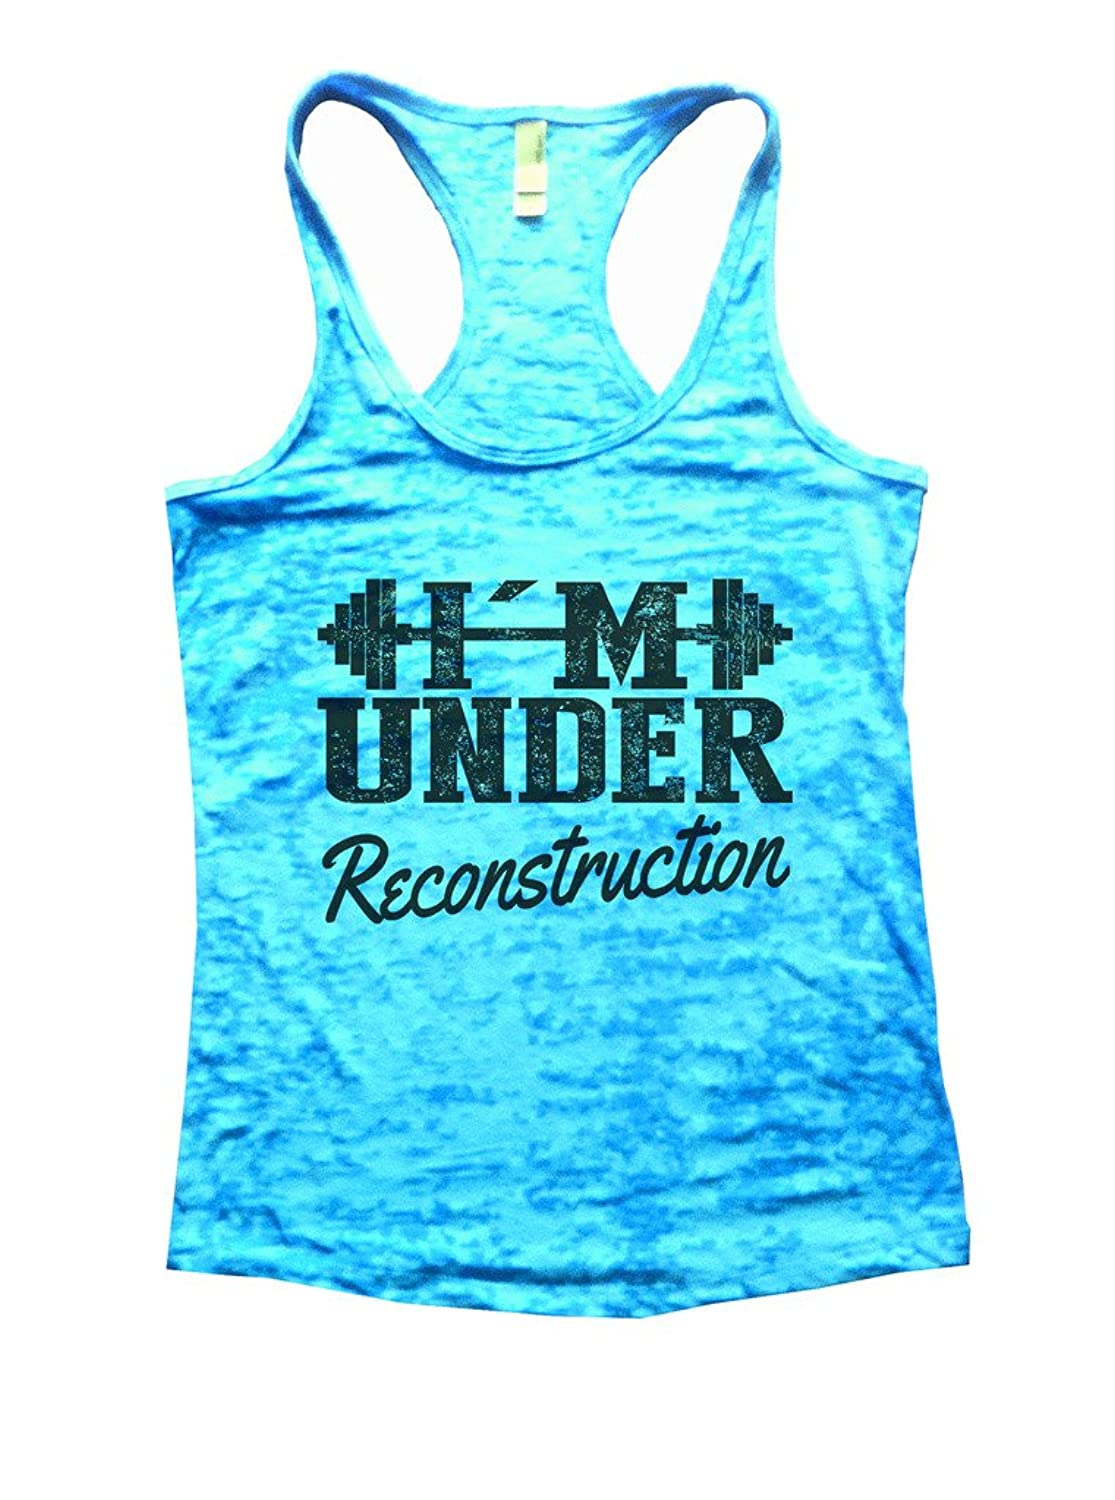 Womans Burnout Workout Tank Top I鈥檓 Under Reconstruction Running Shirt